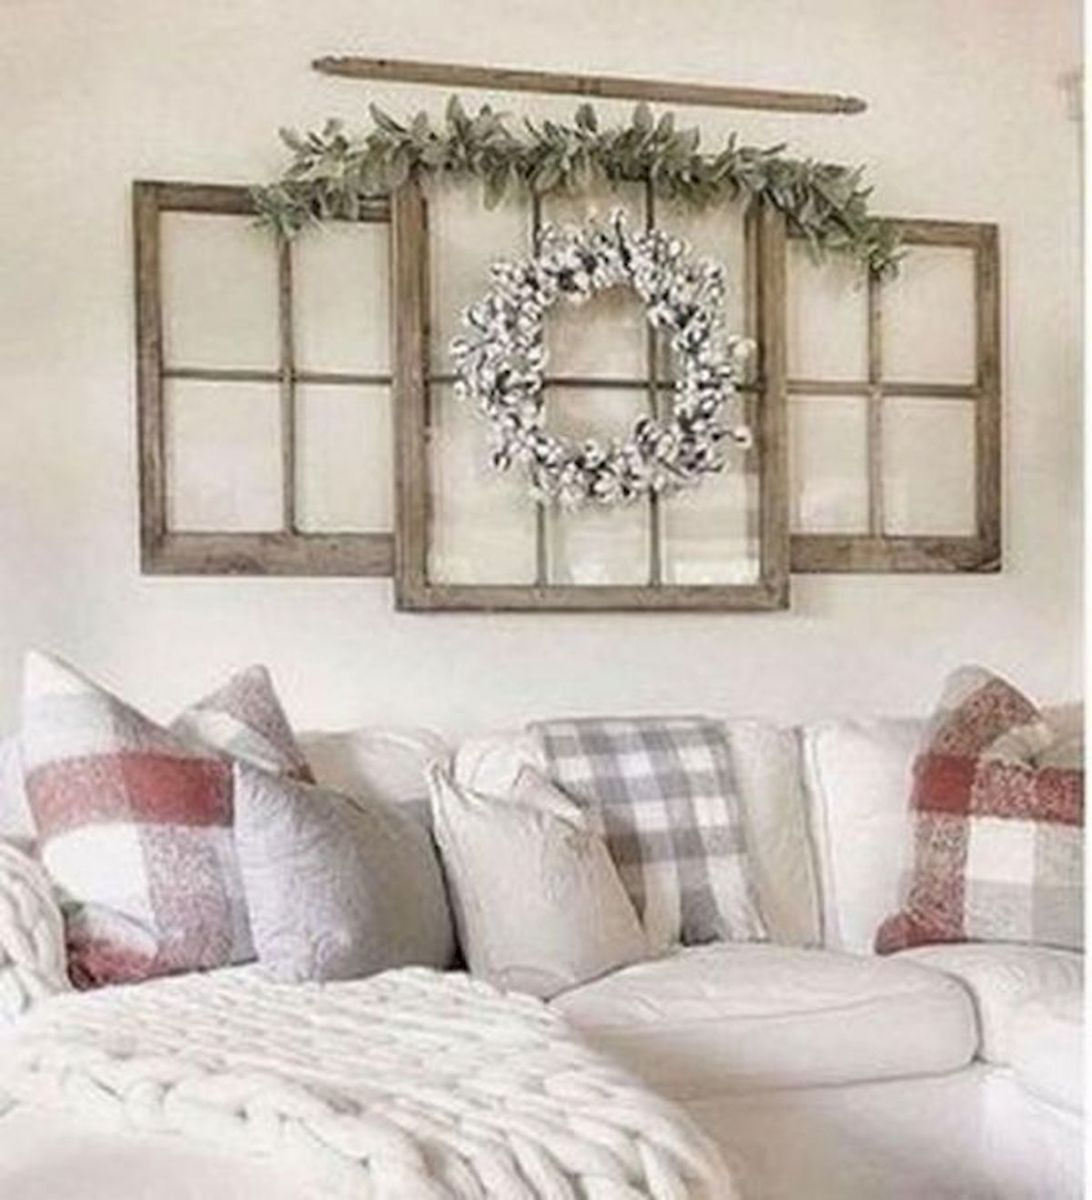 53 Farmhouse Wall Decor Ideas for bedroom (36)